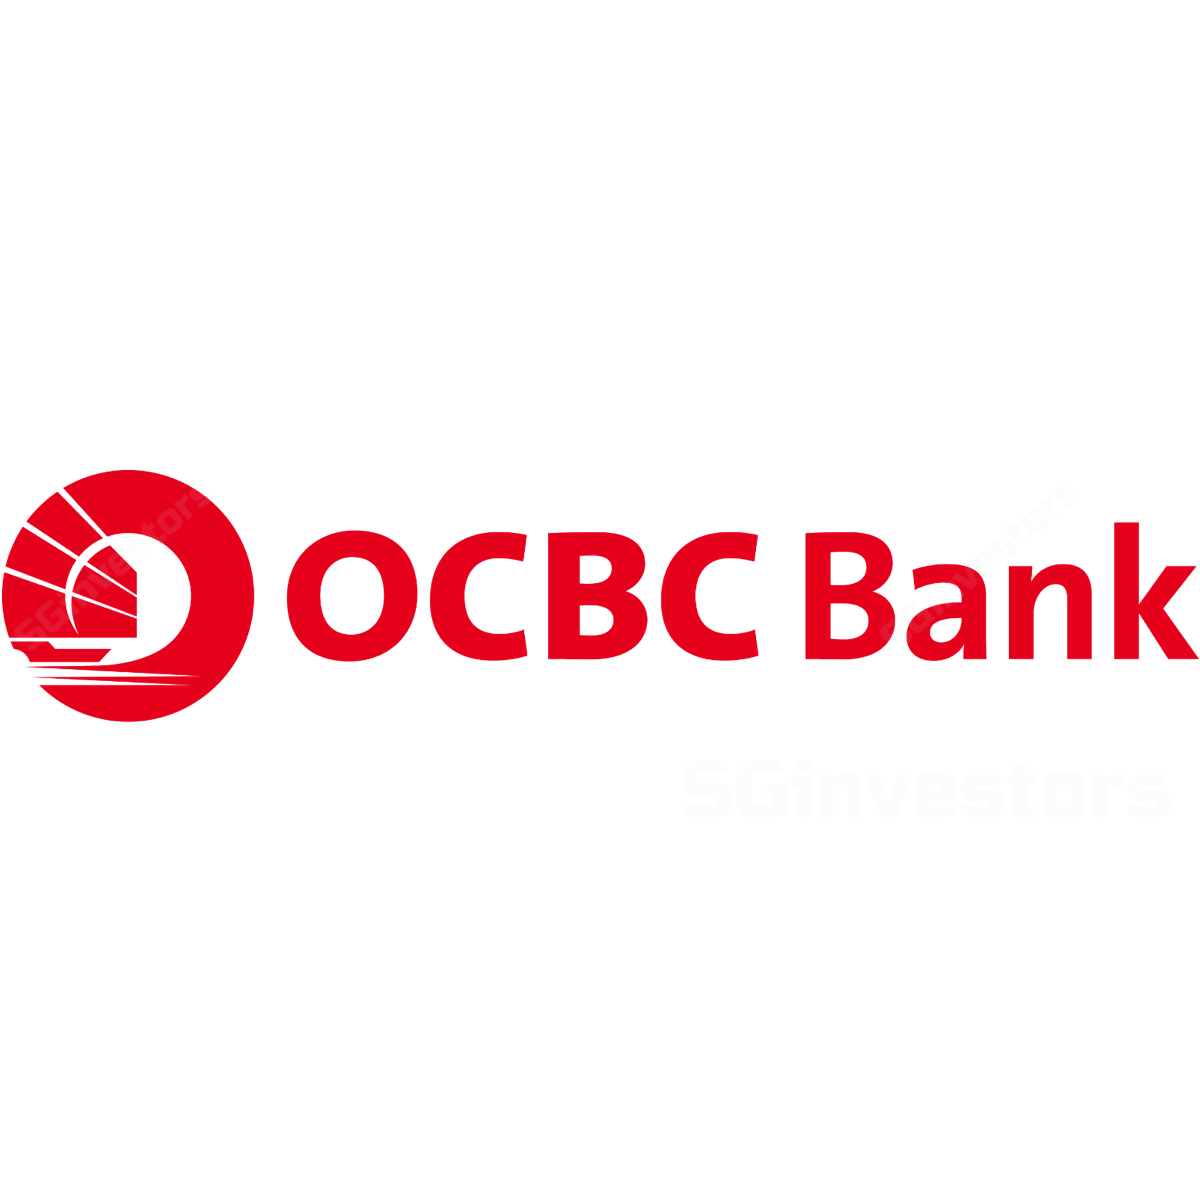 OCBC Bank (OCBC SP) - Maybank Kim Eng 2017-05-15: OCBC Corporate Day Takeaways